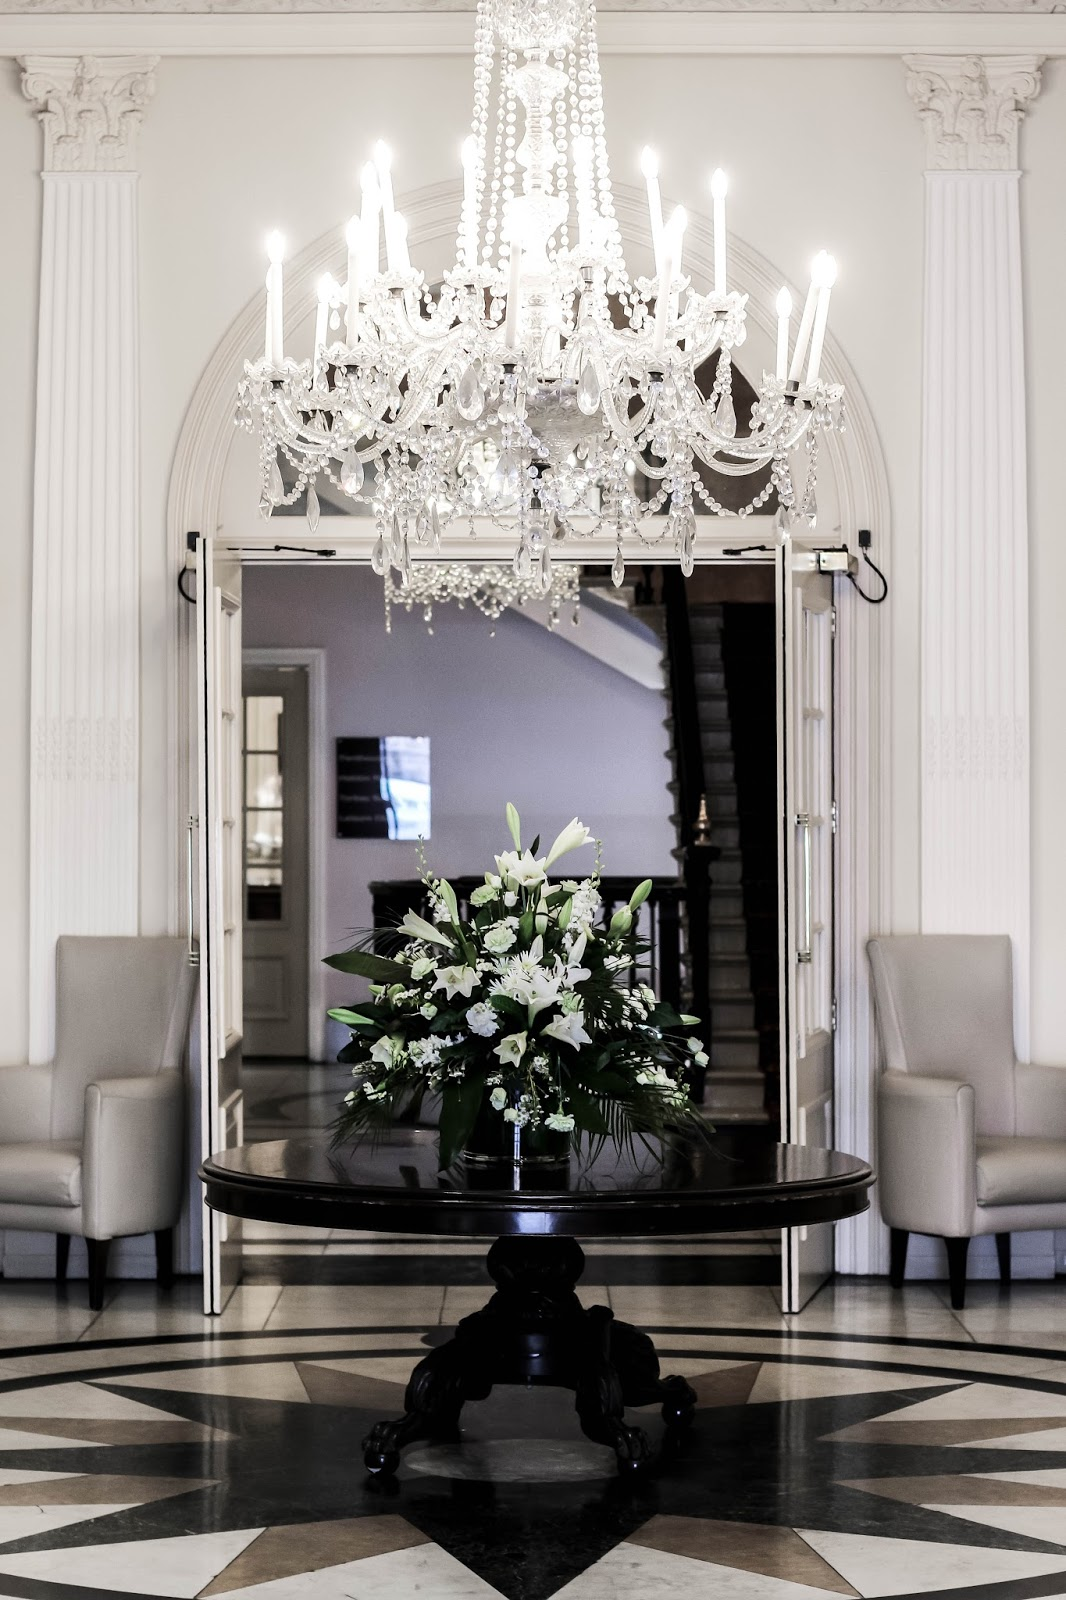 The Imperial Hotel Lobby Entrance Torquay